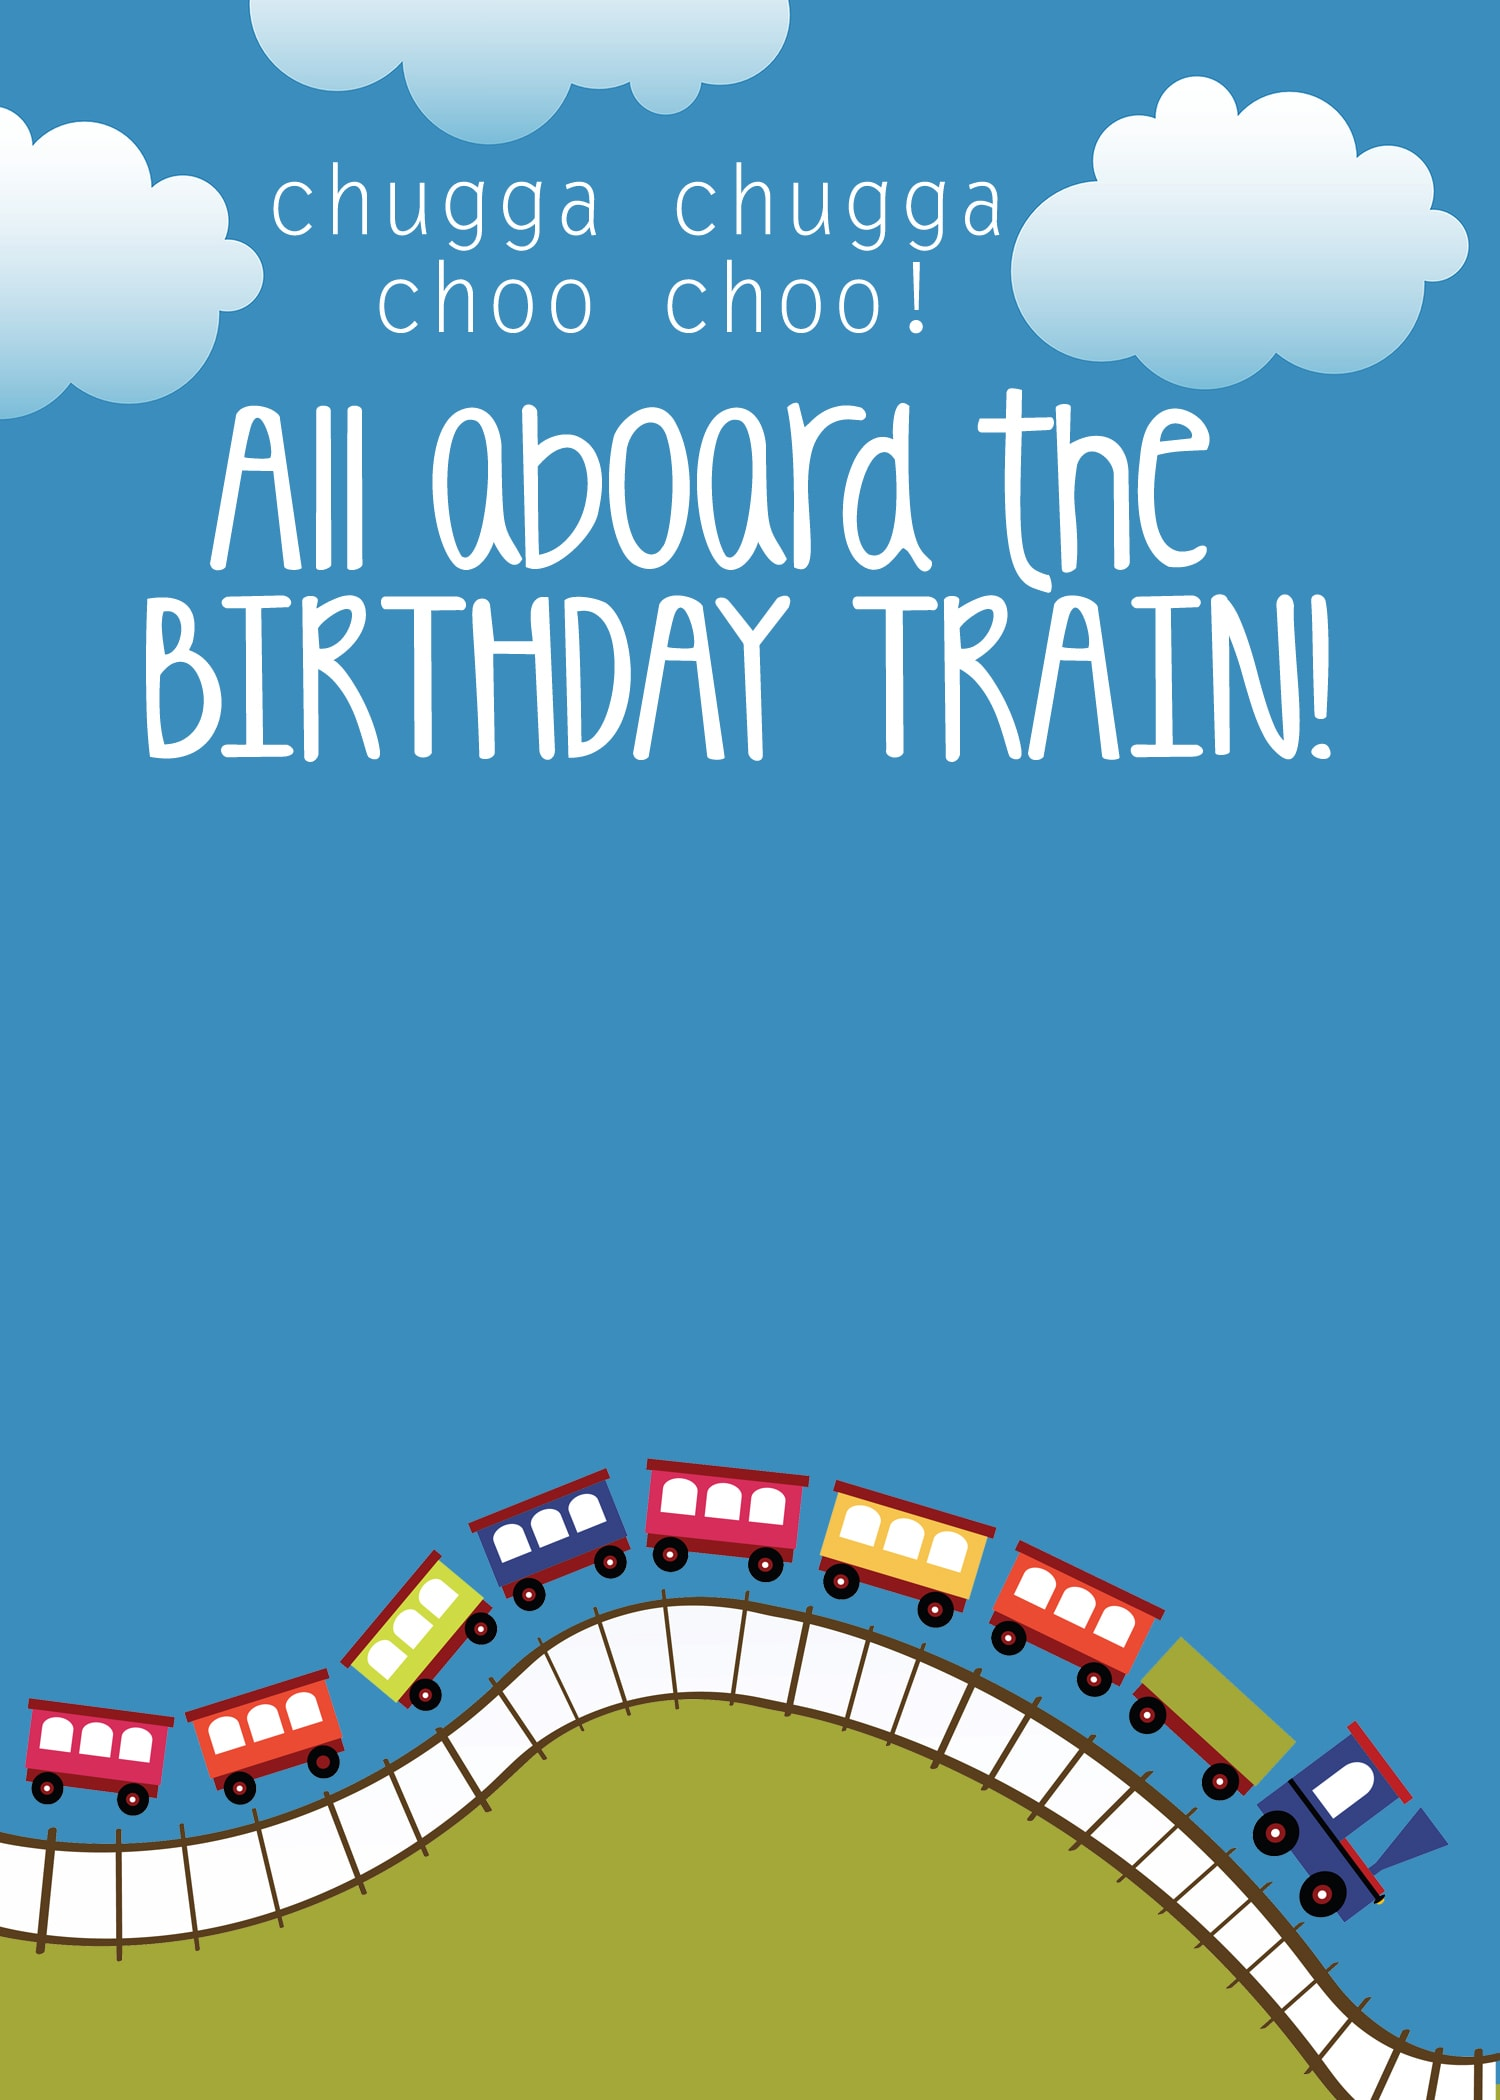 Train themed birthday party with free printables how to nest for less httpshowtonestforlesswp contentuploads201403train birthday party invitation templateg filmwisefo Image collections